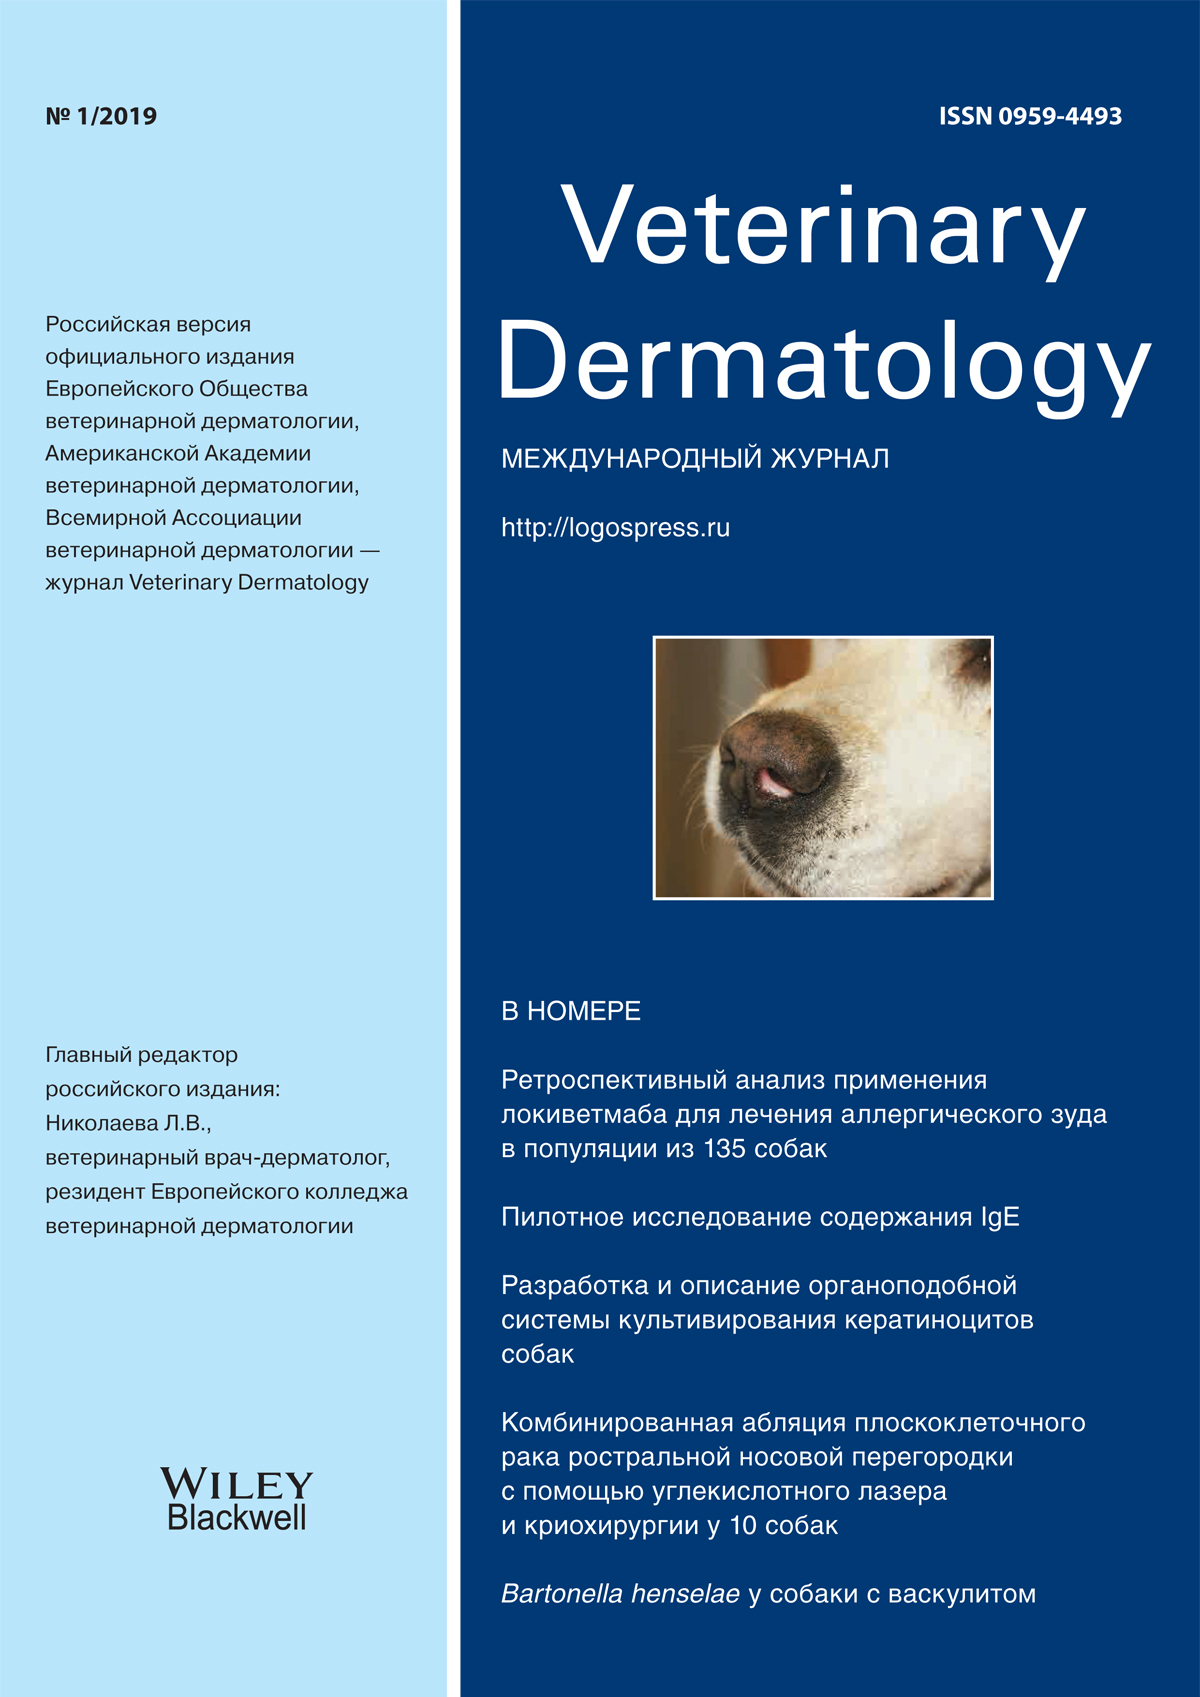 Veterinary Dermatology №1-2019